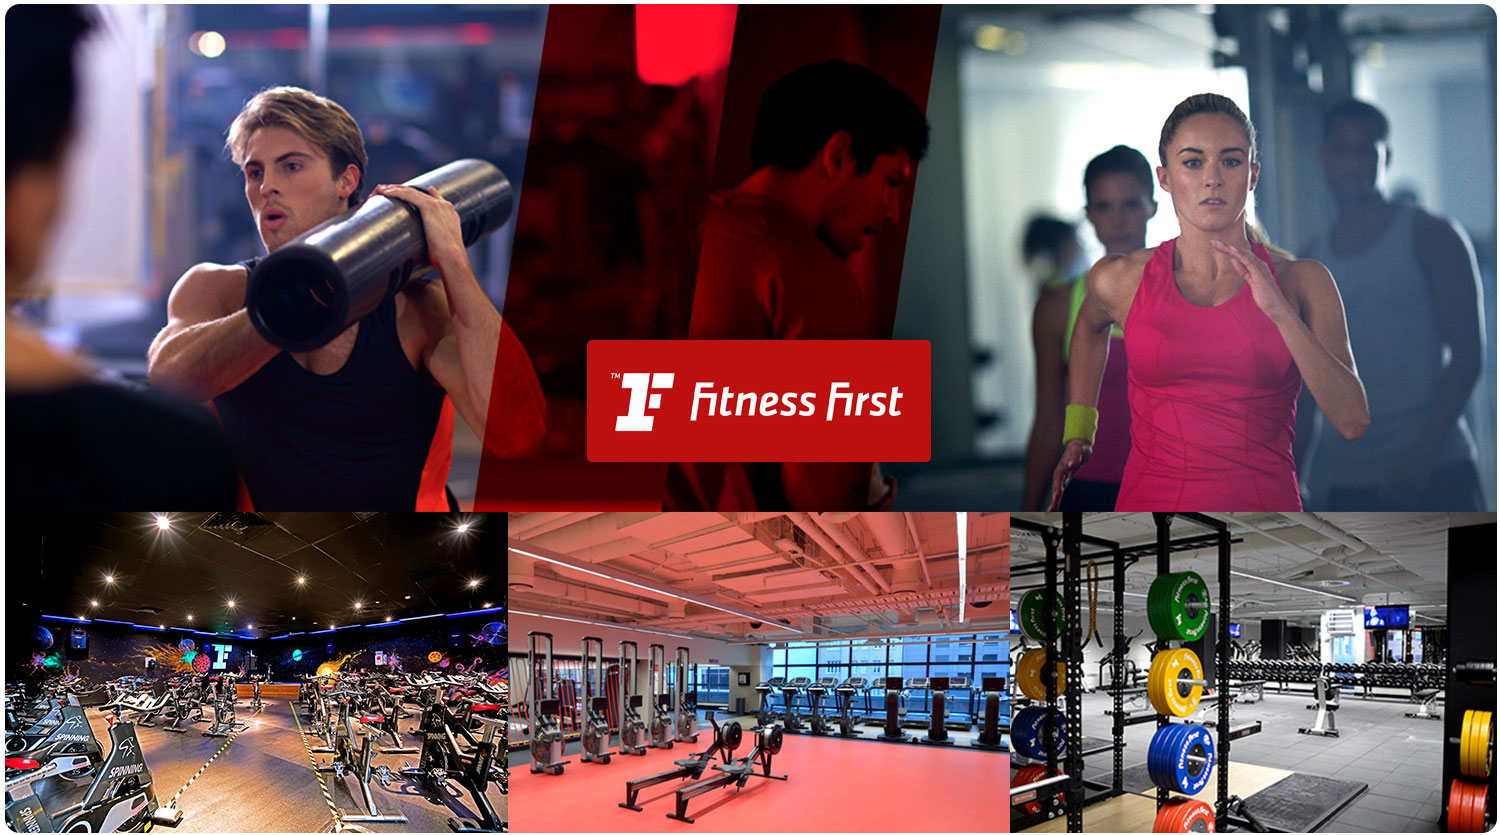 Start your Fitness Journey with Fitness First with only $14.95 for 14 days at Fitness First Deakin ACT. Experience our first class gym and freestyle classes inc. Zumba, Pilates, Yoga, Boxing, Les Mills and more. Take the first step with Fitness First Deakin ACT.